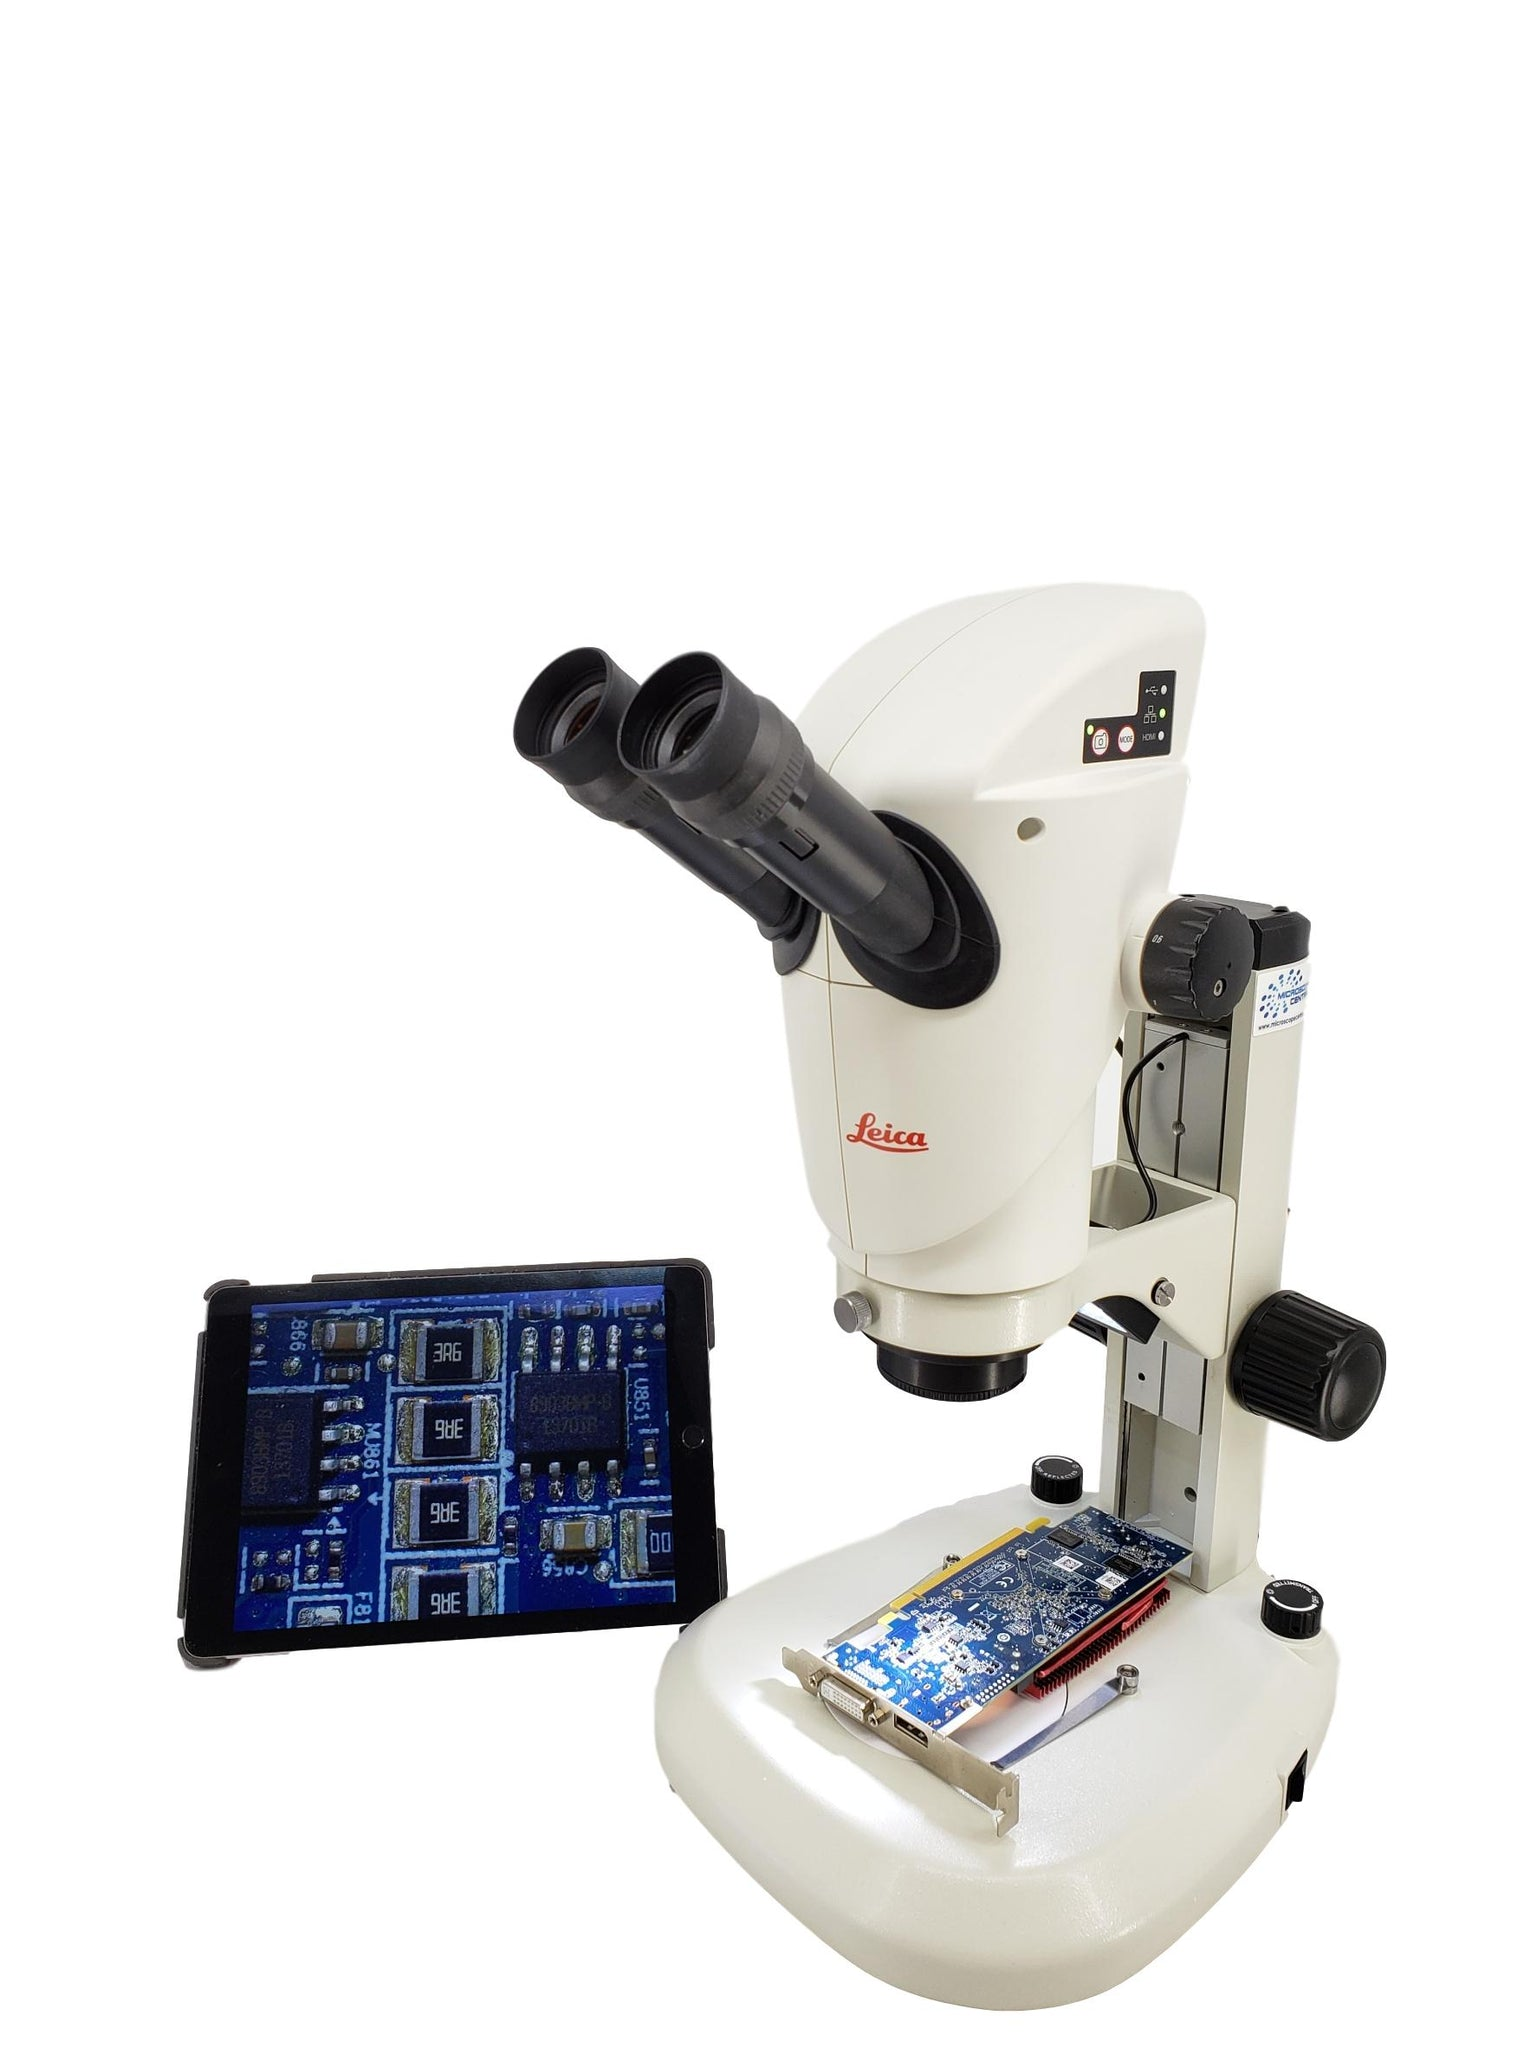 Leica S9i HD Digital WiFi Microscope On LED Stand 6.1x - 55x